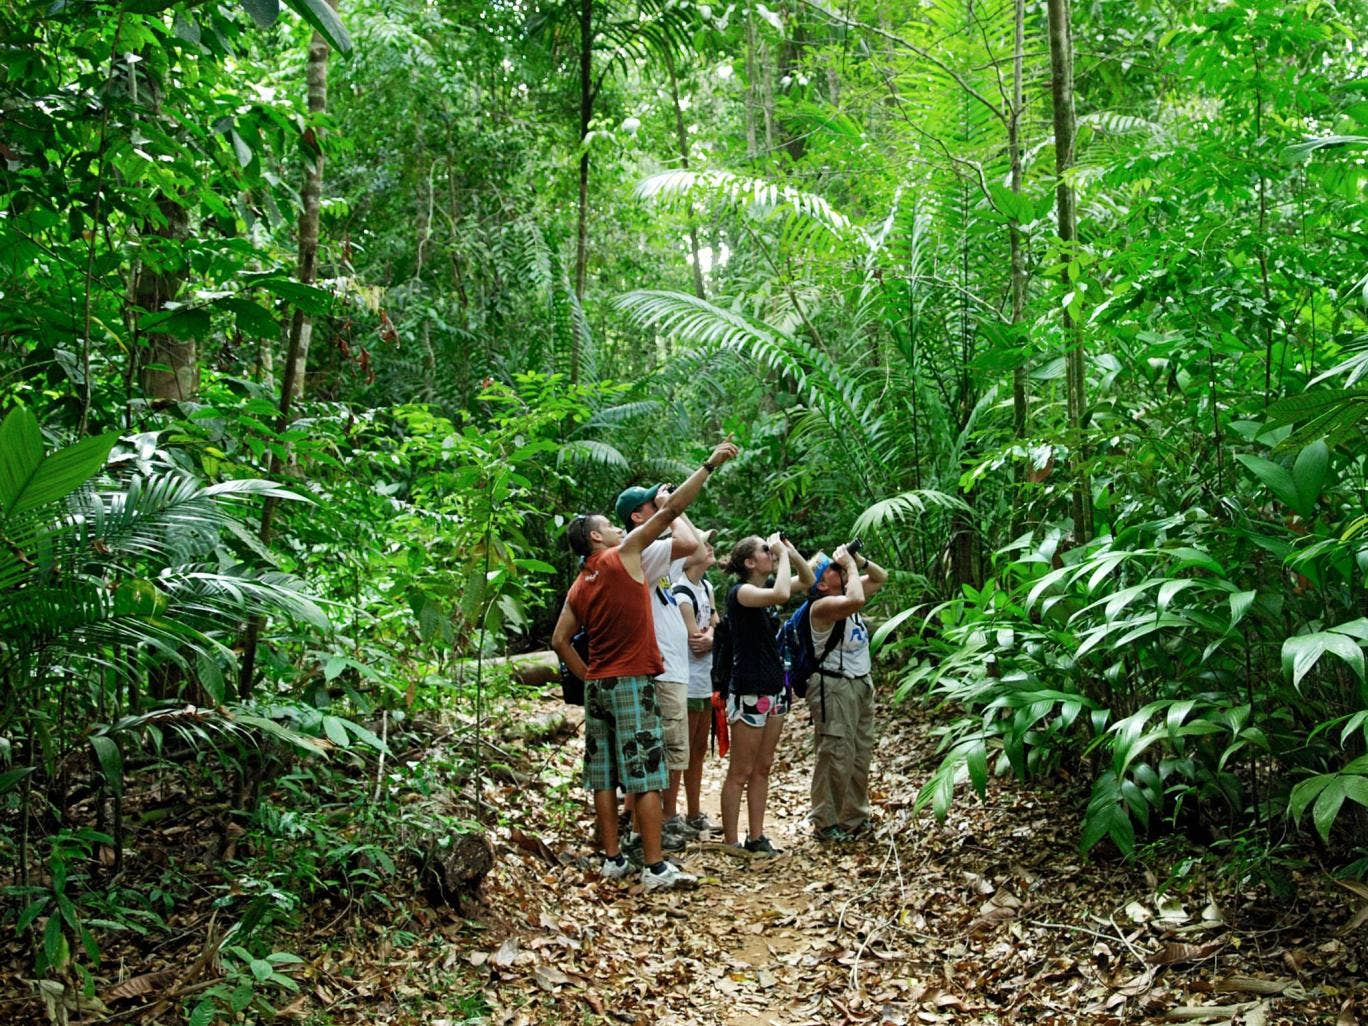 Where the wild things are: exploring Costa Rica